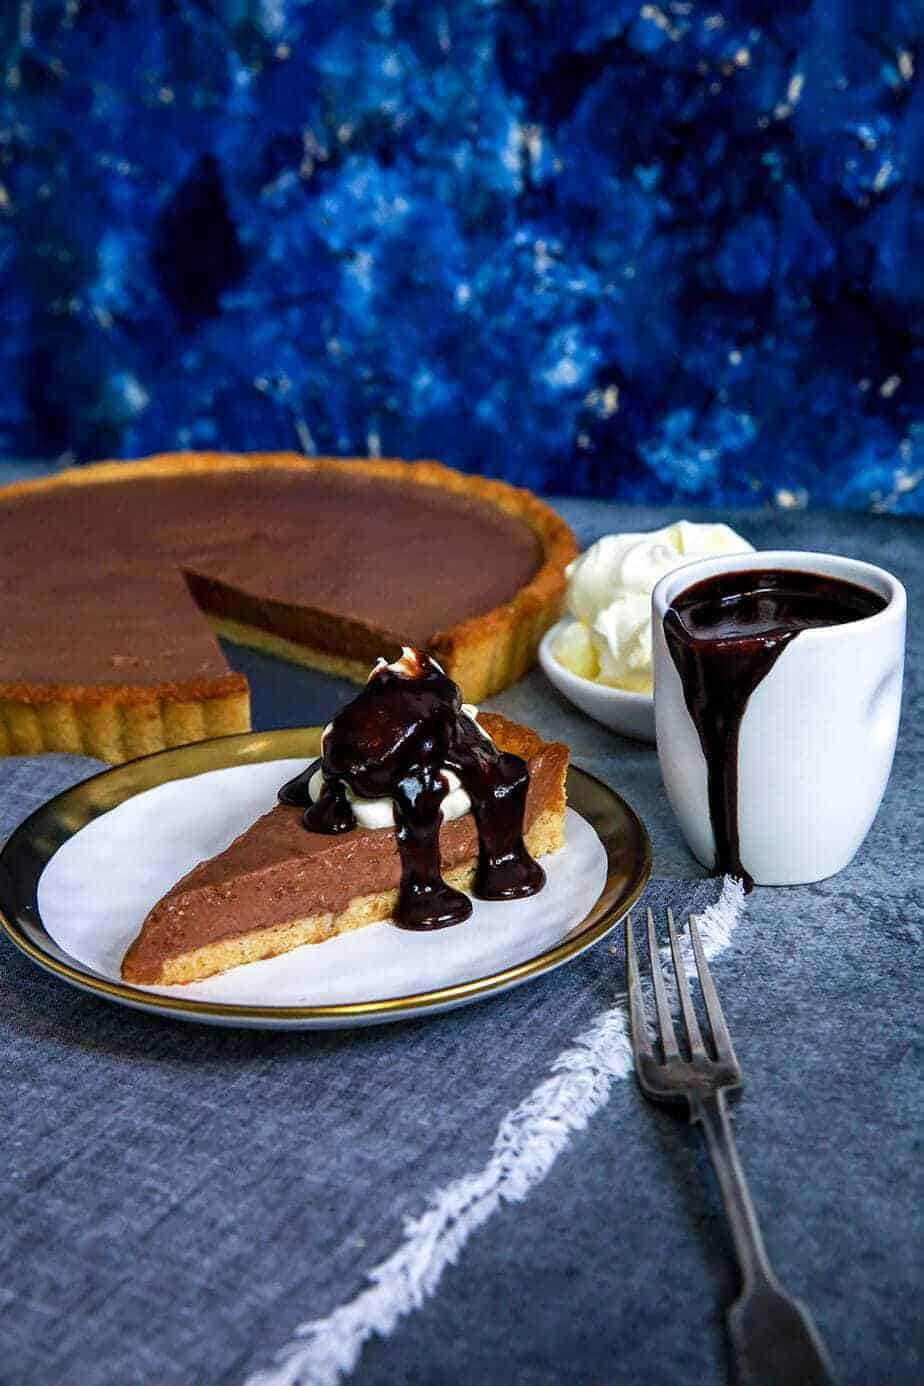 Bavarian pie with chocolate sauce on a plate